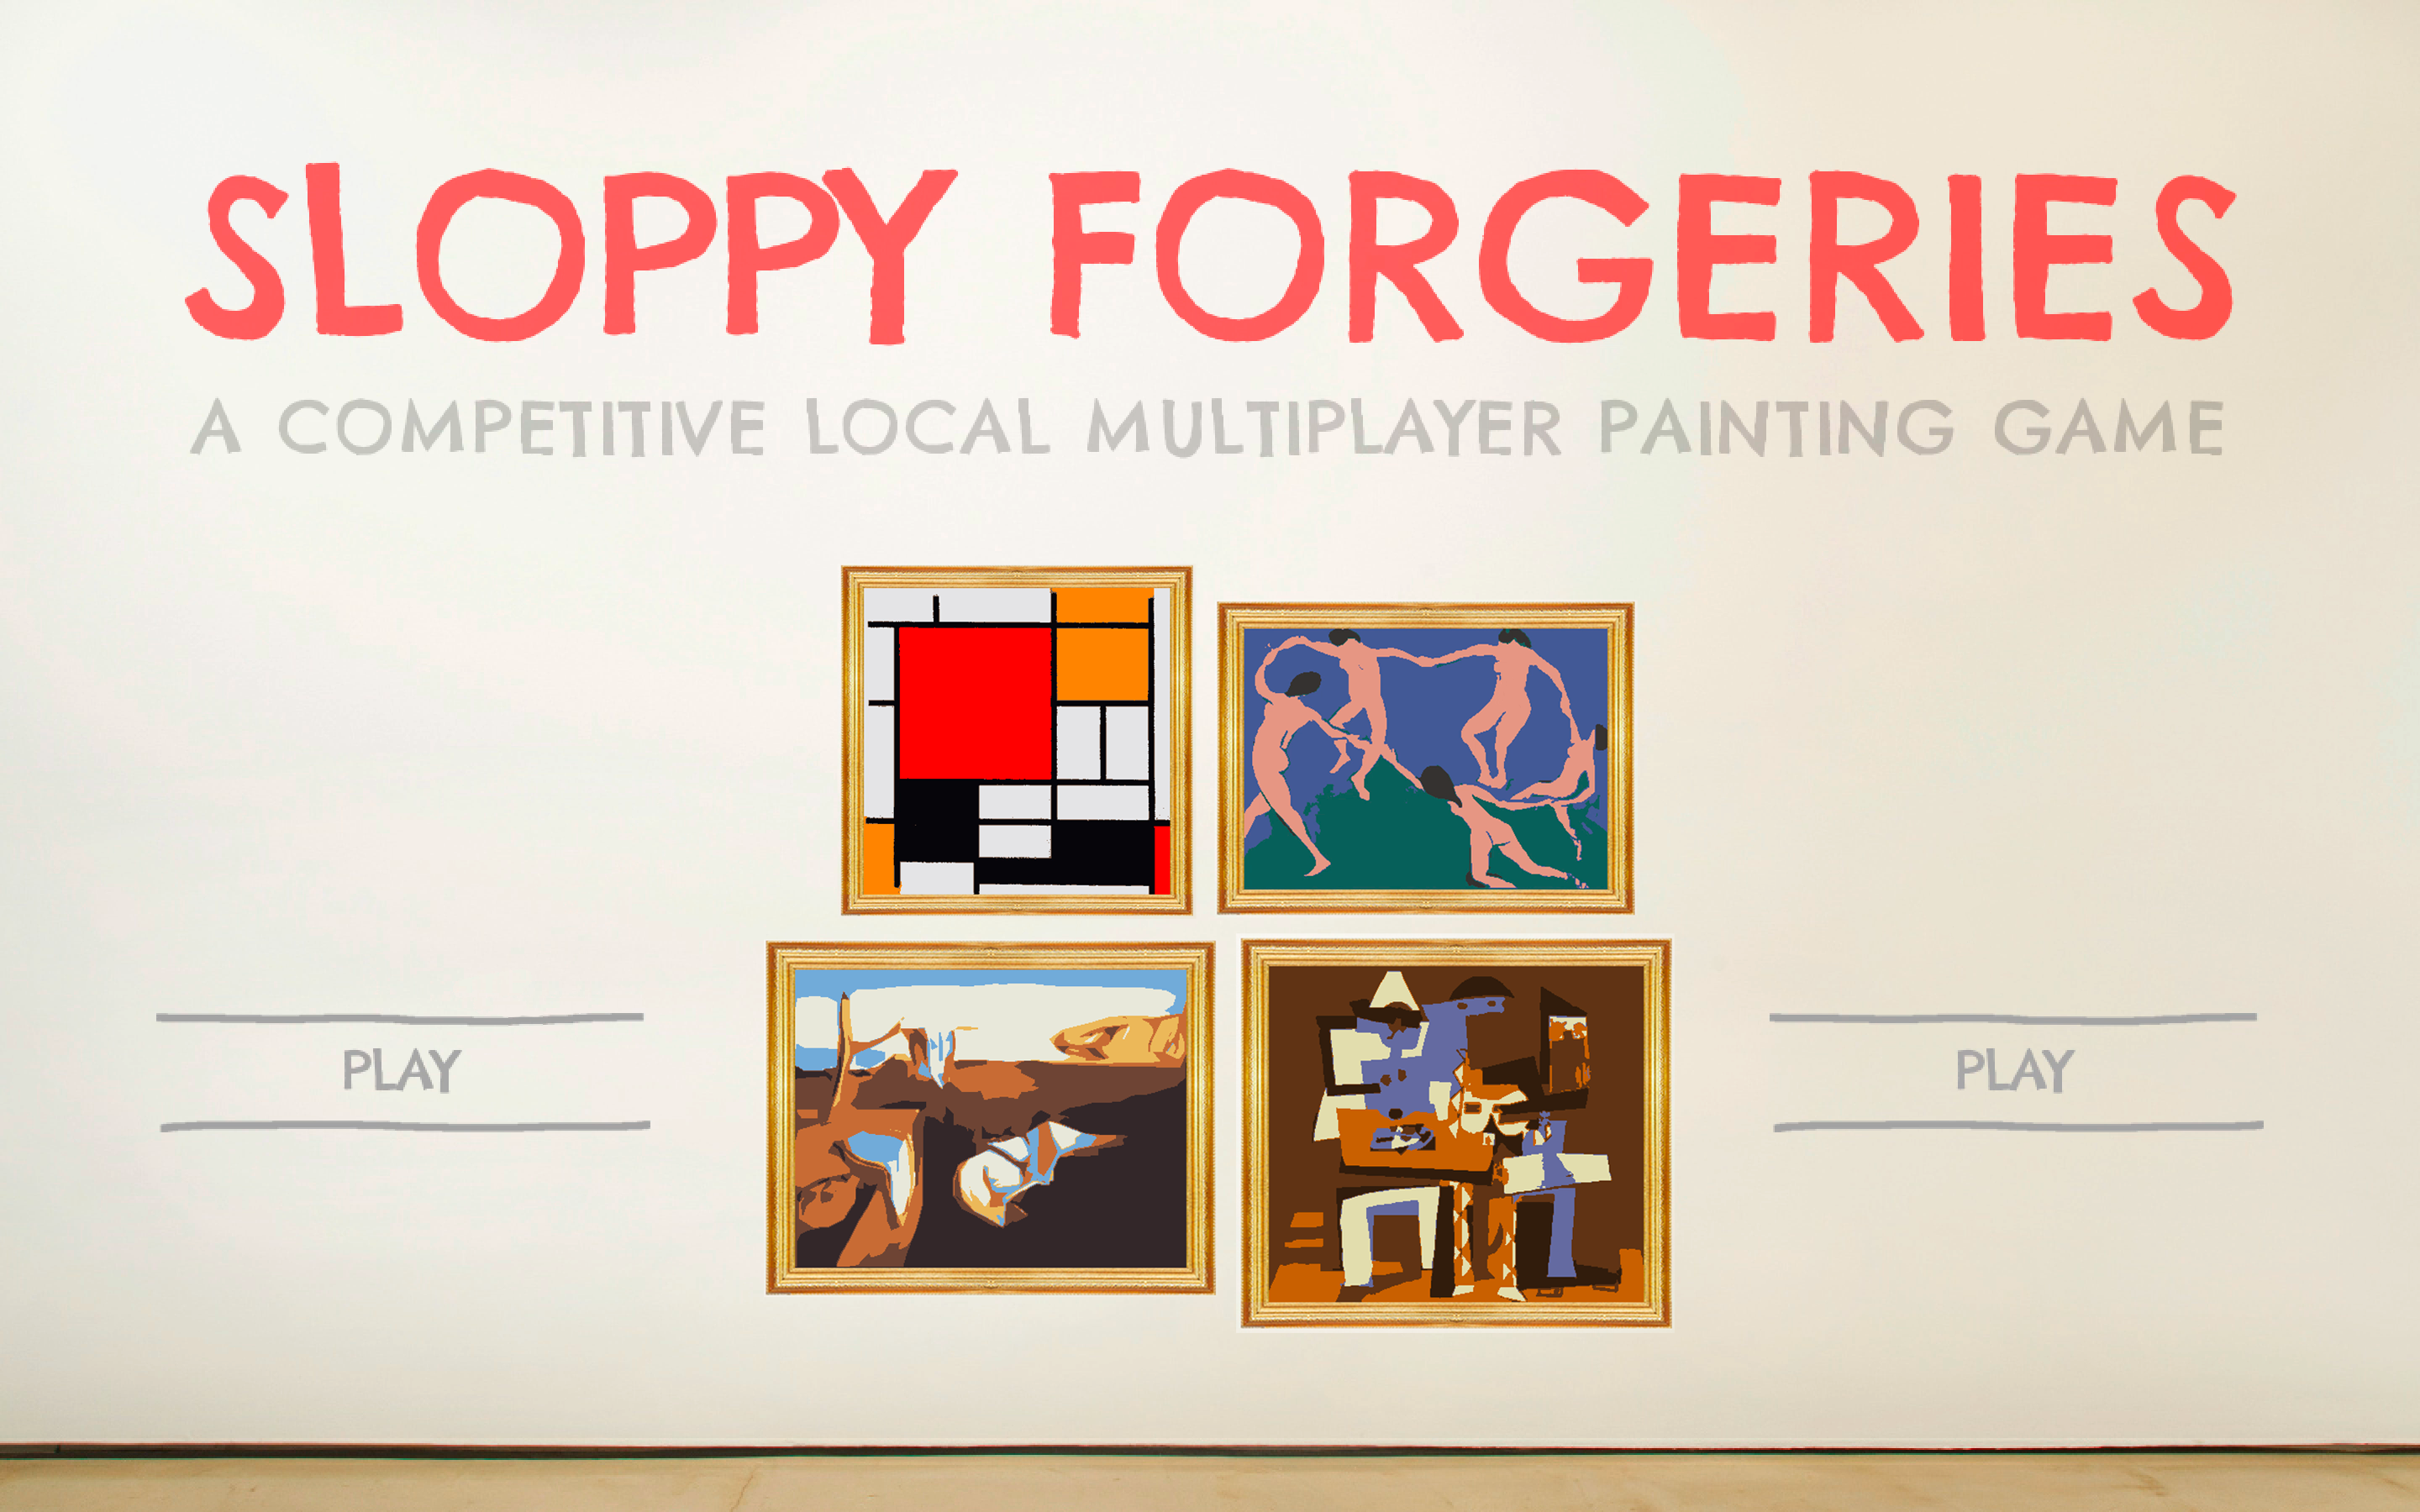 Sloppy Forgeries